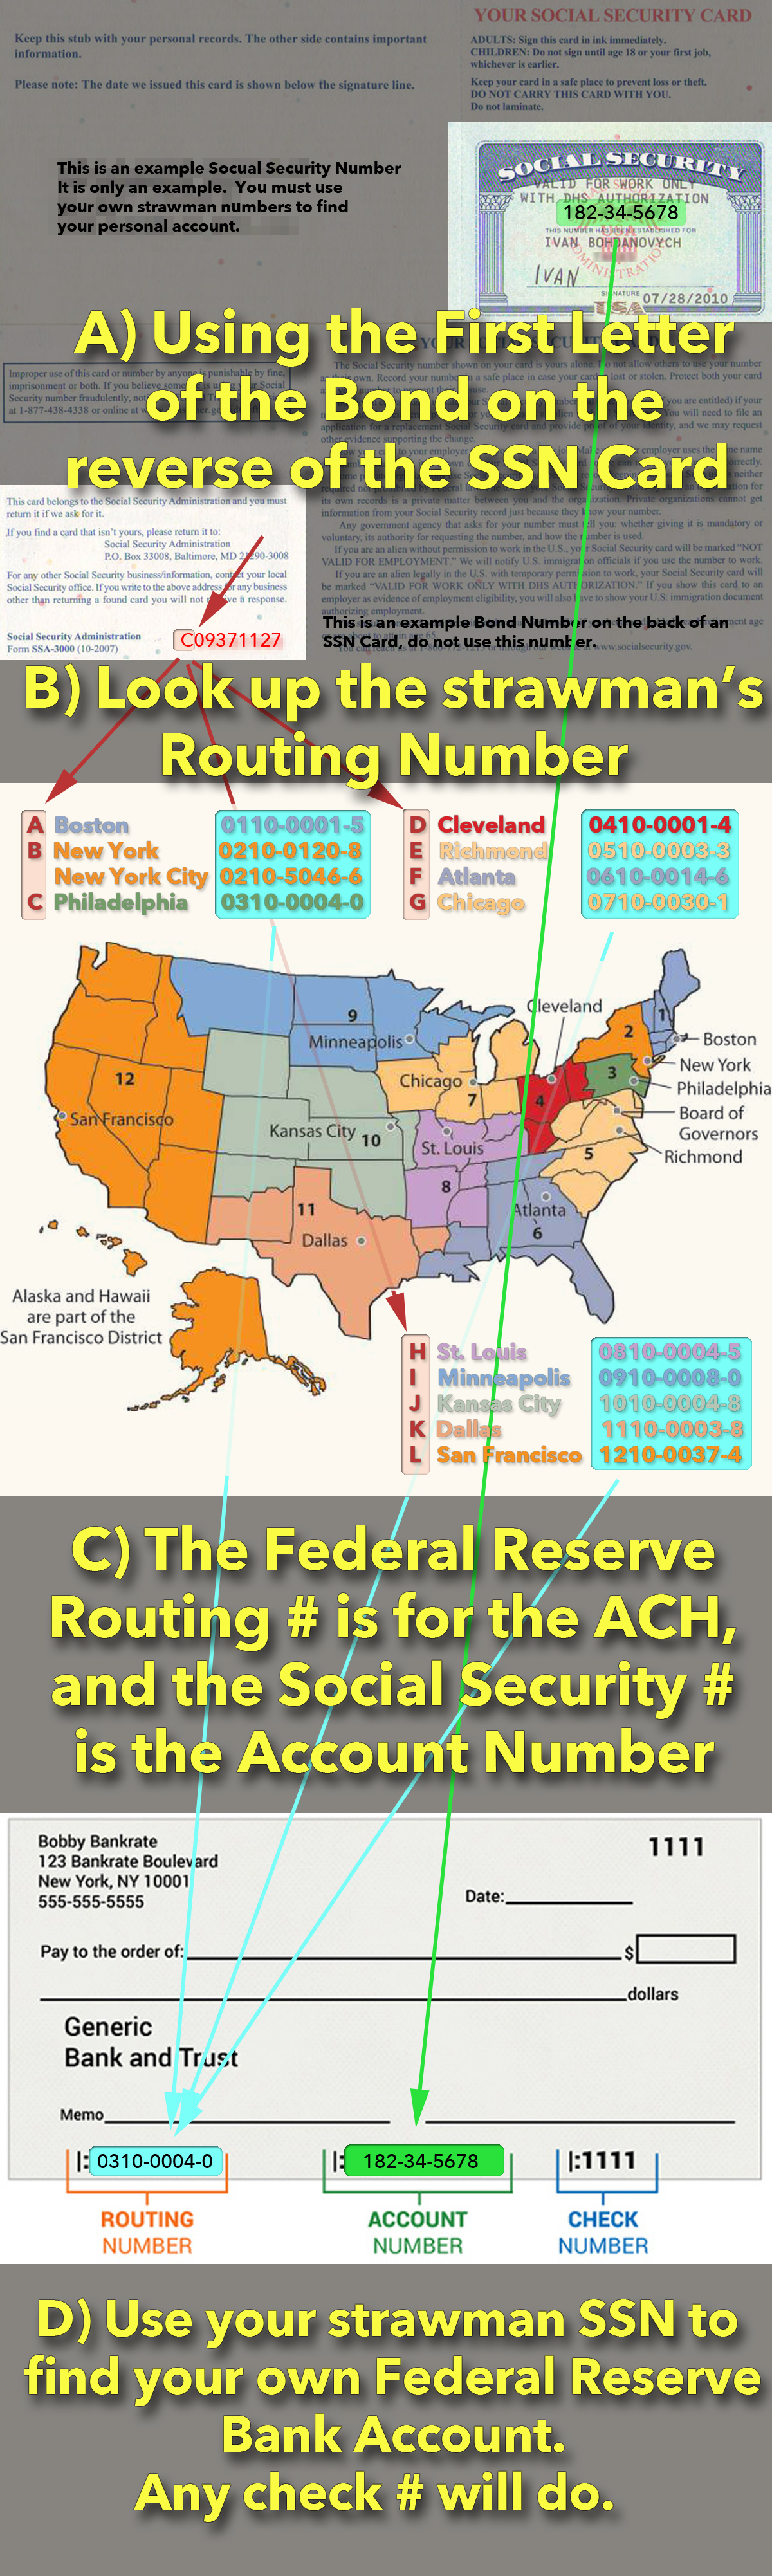 update 20170714 the federal reserve was saying that using federal reserve routing numbers are only for banks